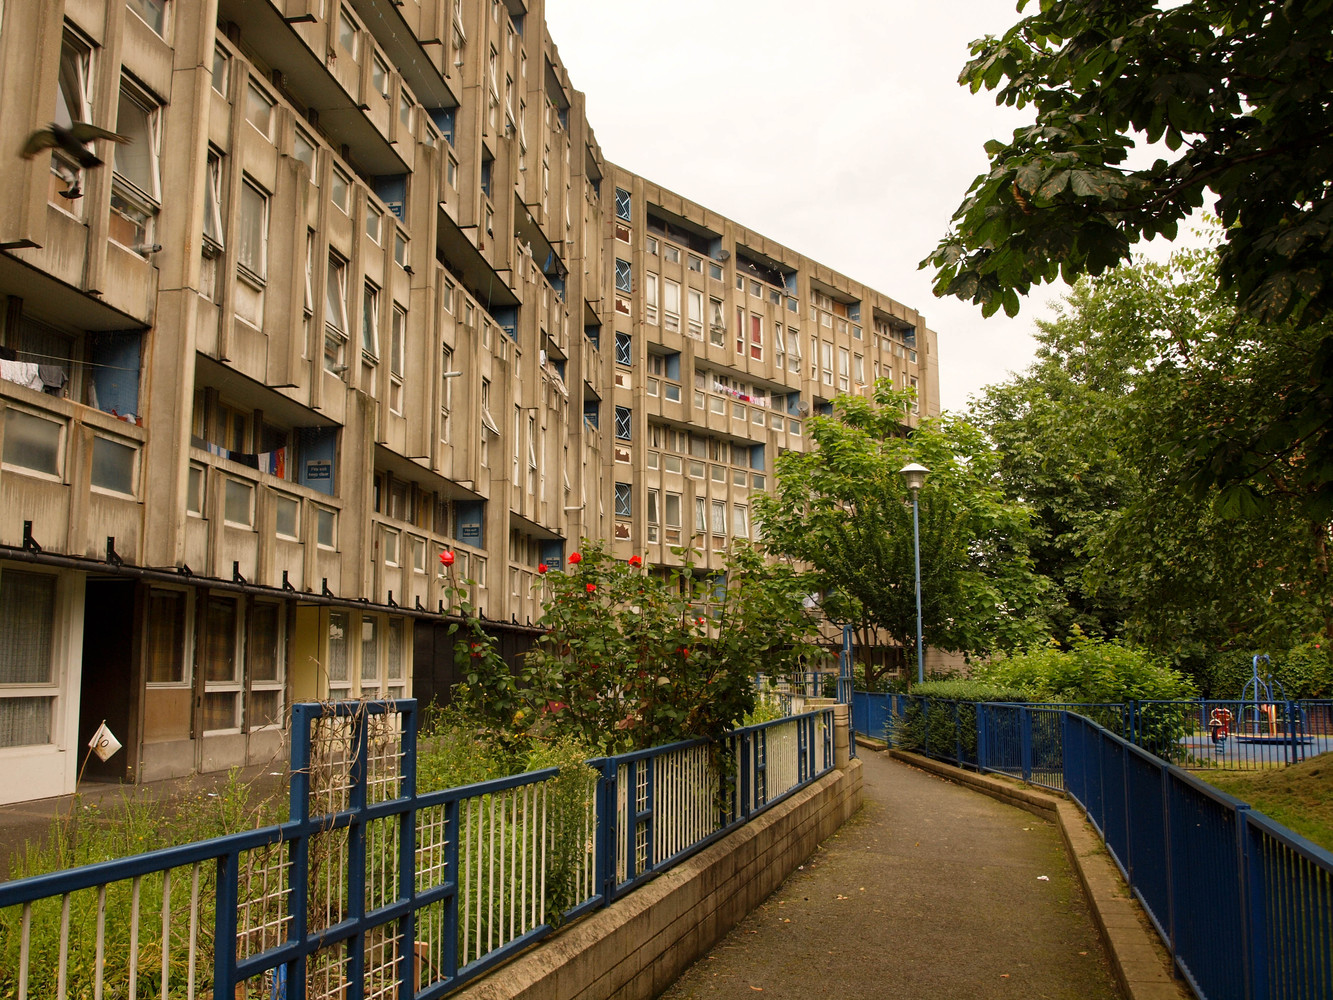 Gallery of V&A Museum to Save Large Section of Robin Hood Gardens ...